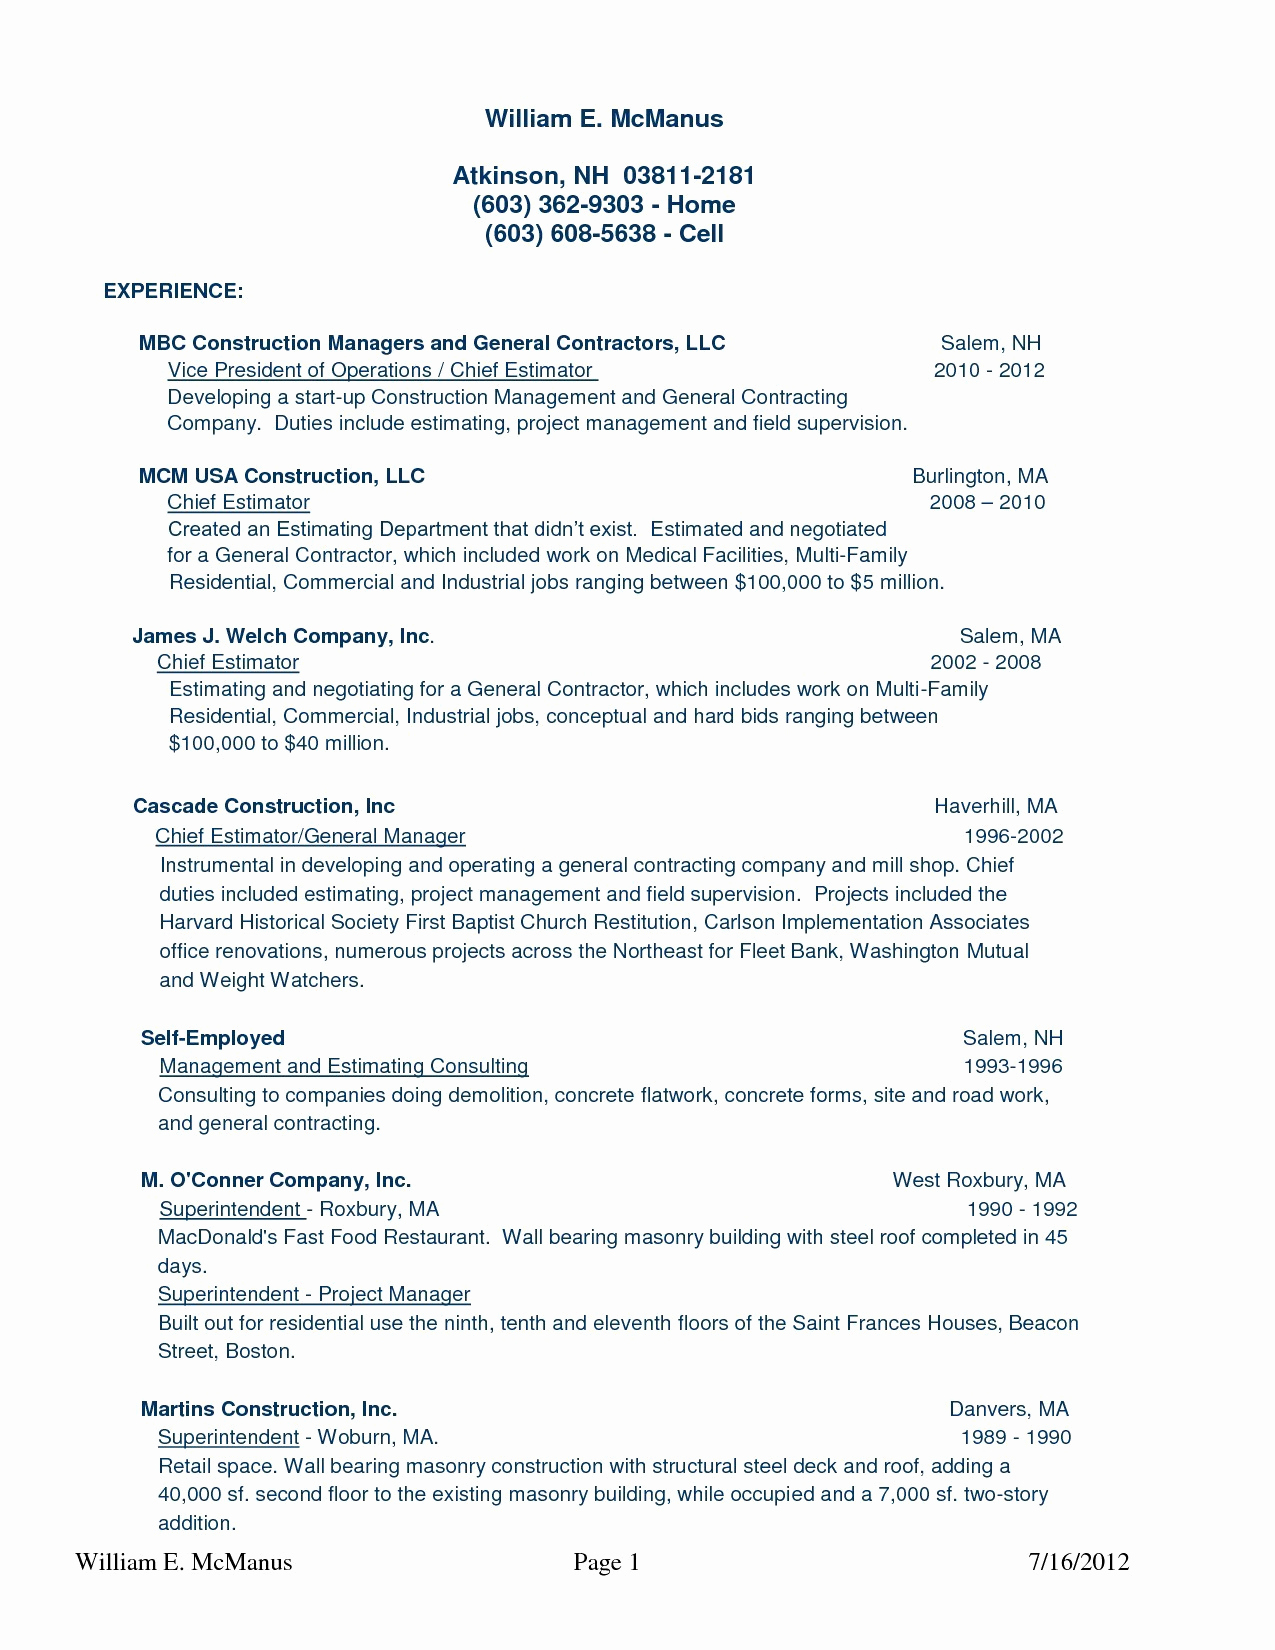 Construction Manager Resume - Construction Manager Pros and Cons